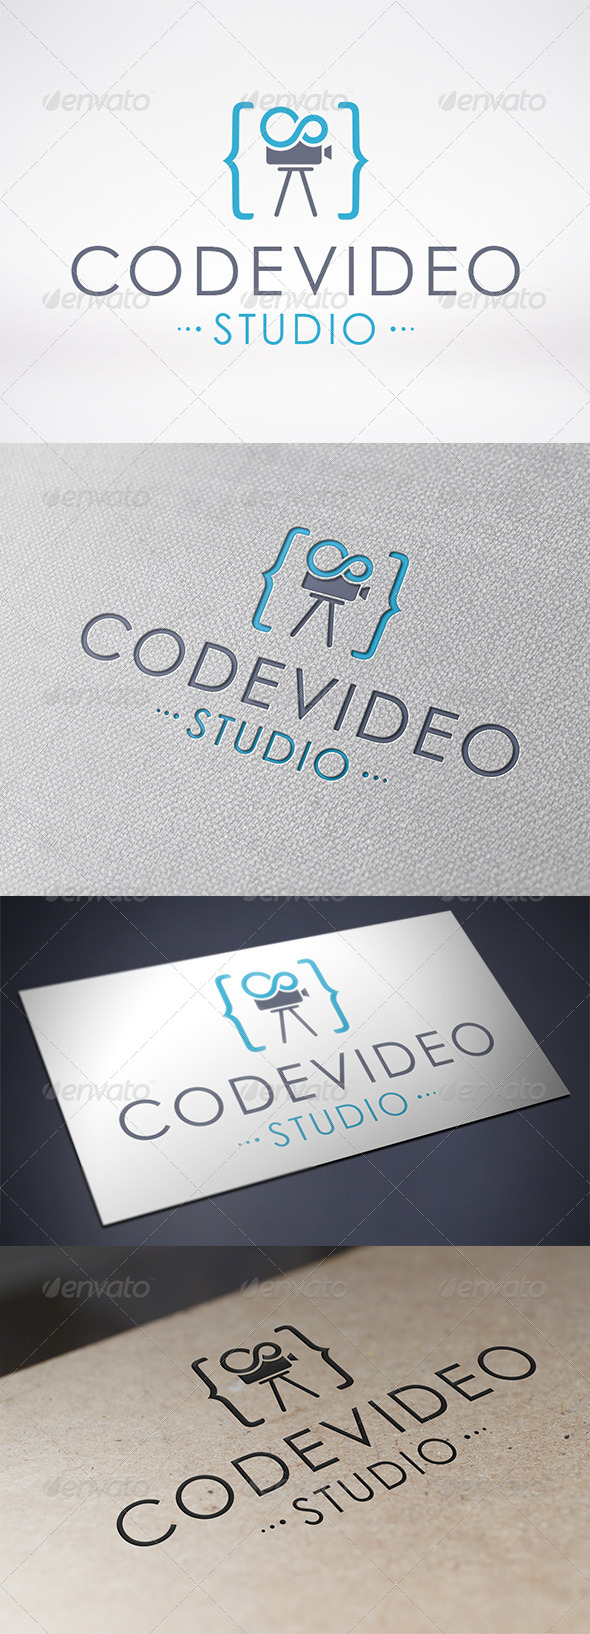 Code Video Logo Template - Objects Logo Templates